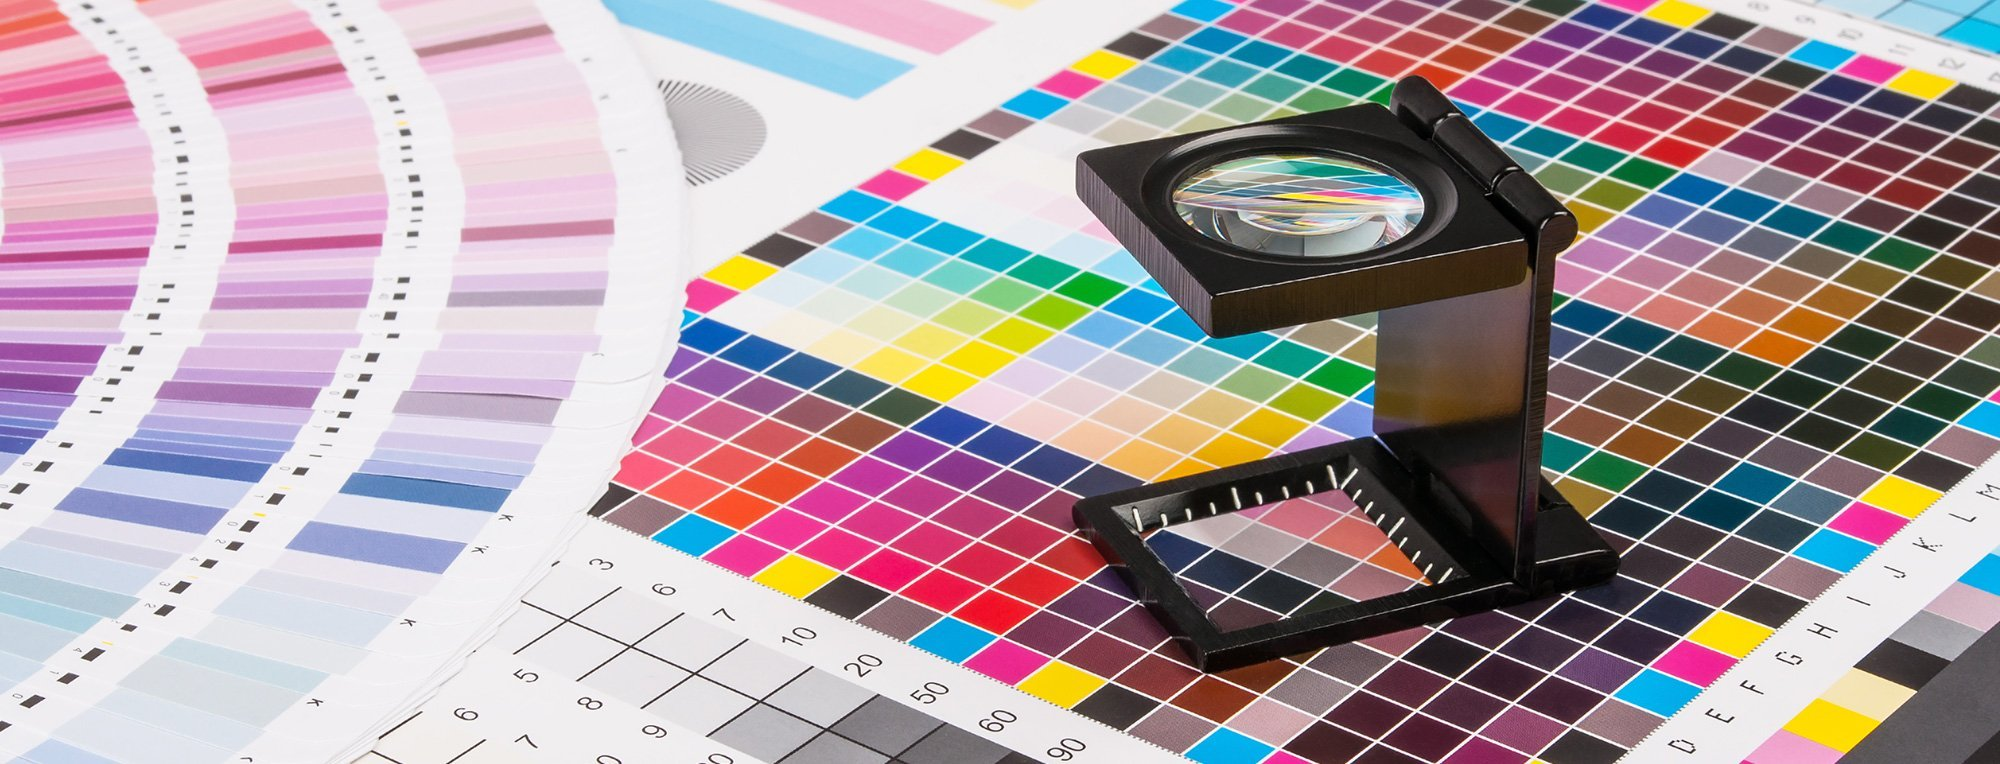 Printing Services to Make Your Life Easier